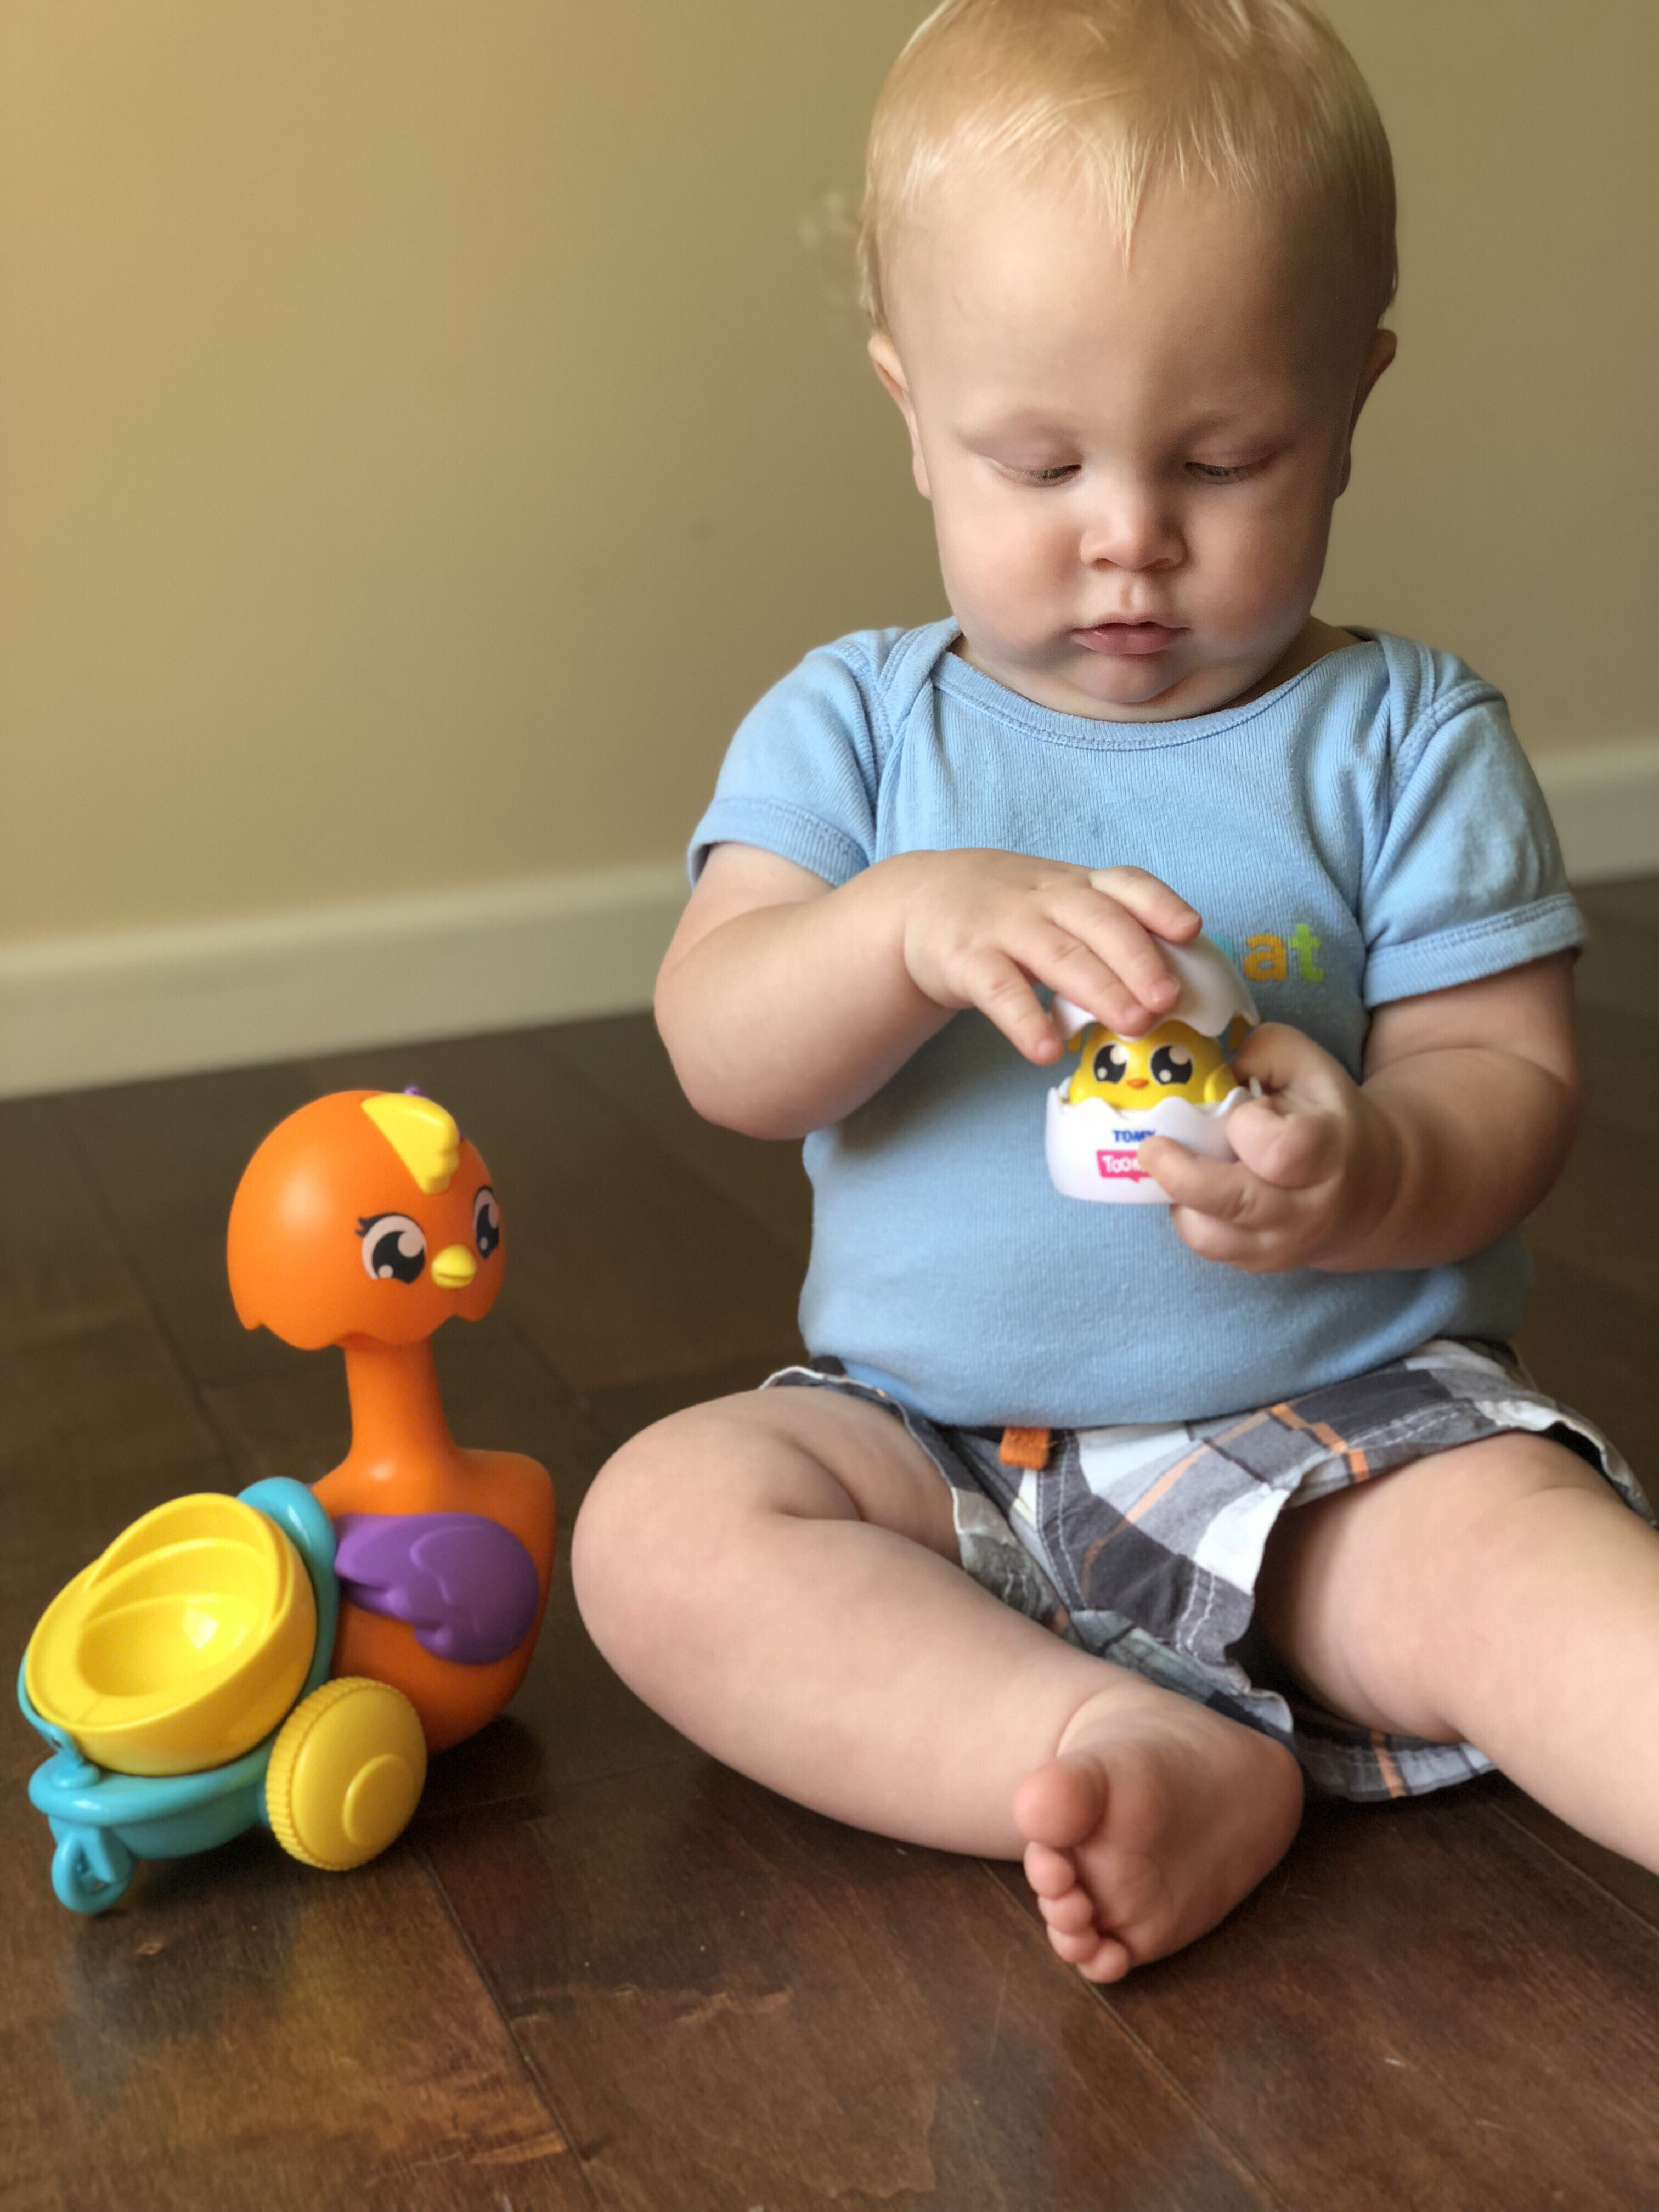 Developmental Learning with Toomies by TOMY